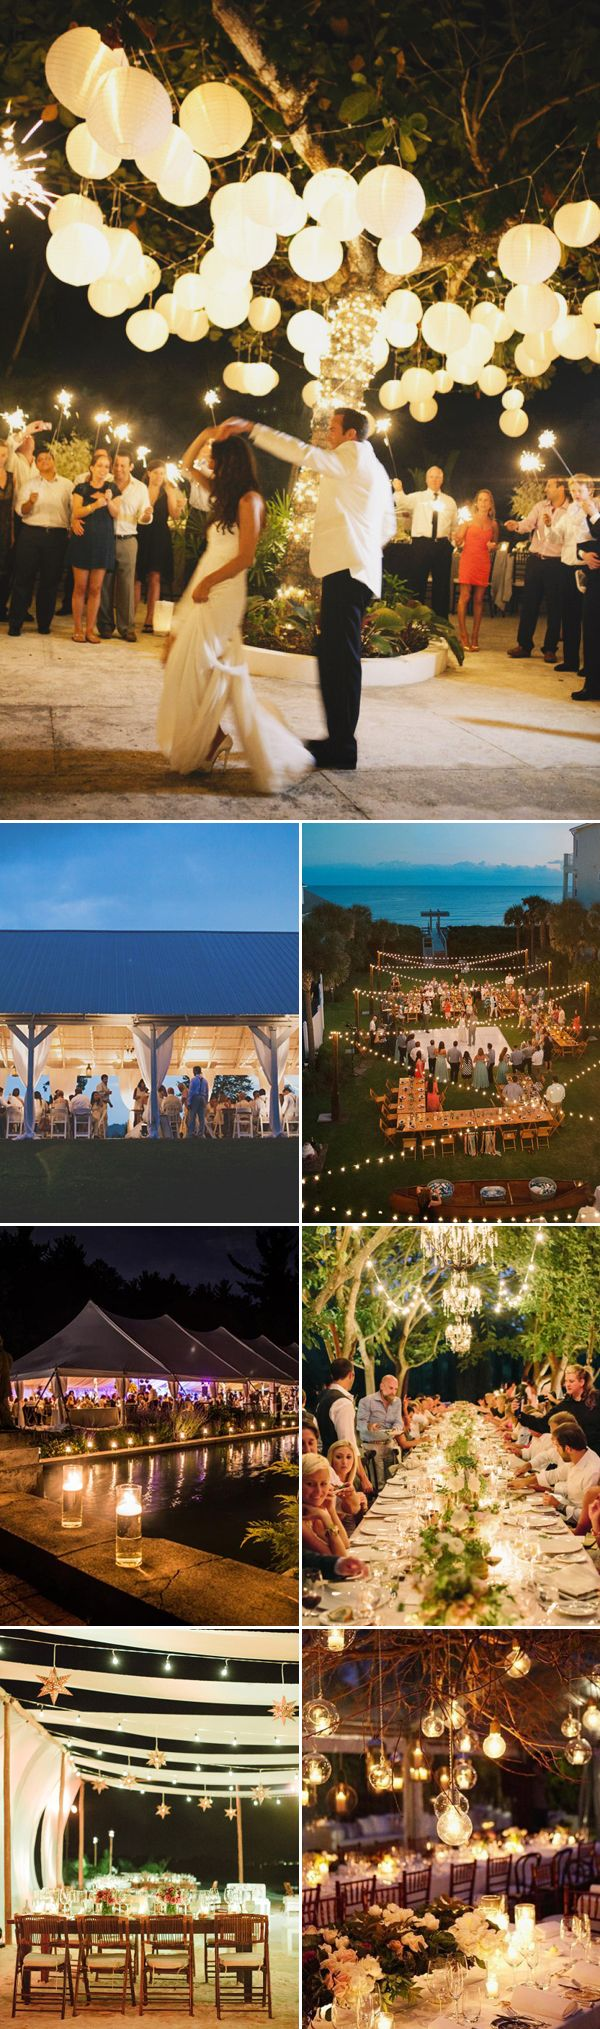 diy outdoor wedding lighting ideas%0A Outdoor weddings are romantic and beautiful  with natural beauty all around  you lessening your need